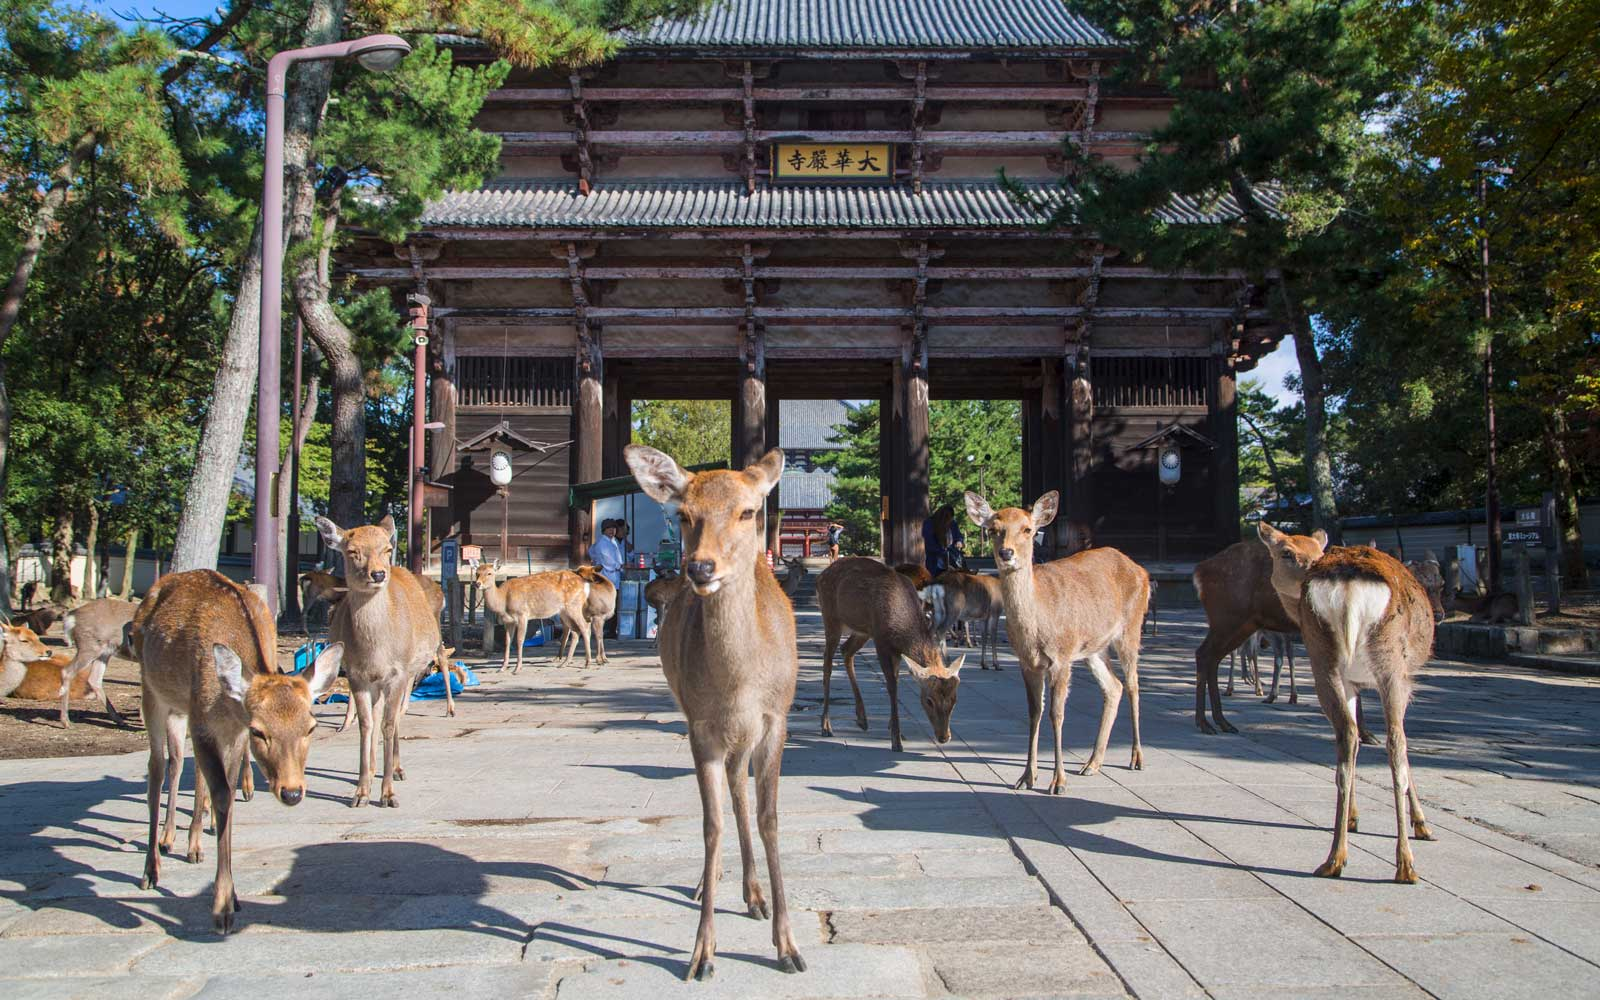 Deer outside Nandaimon Gate of Todaiji Temple (UNESCO World Heritage Site), Nara, Kansai, Japan